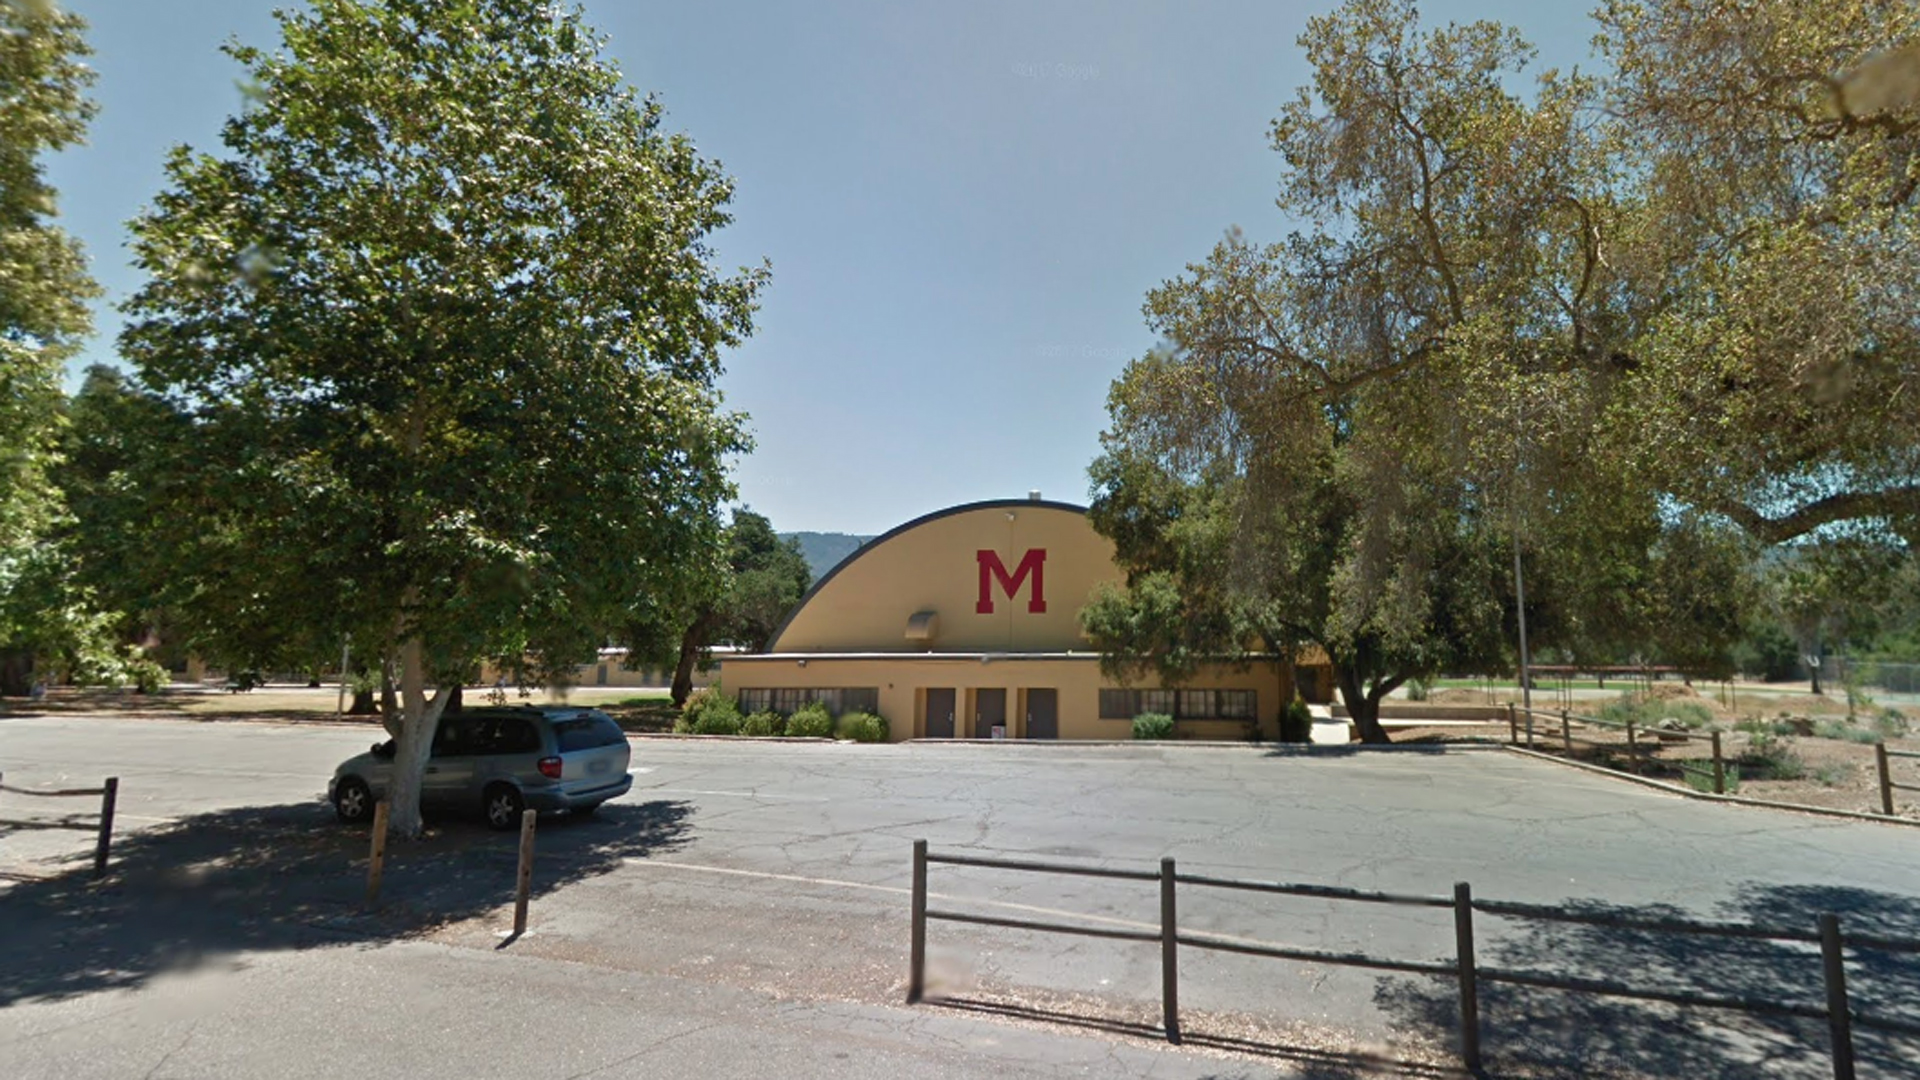 Matilija Junior High School is shown in a Street View image from Google Maps.